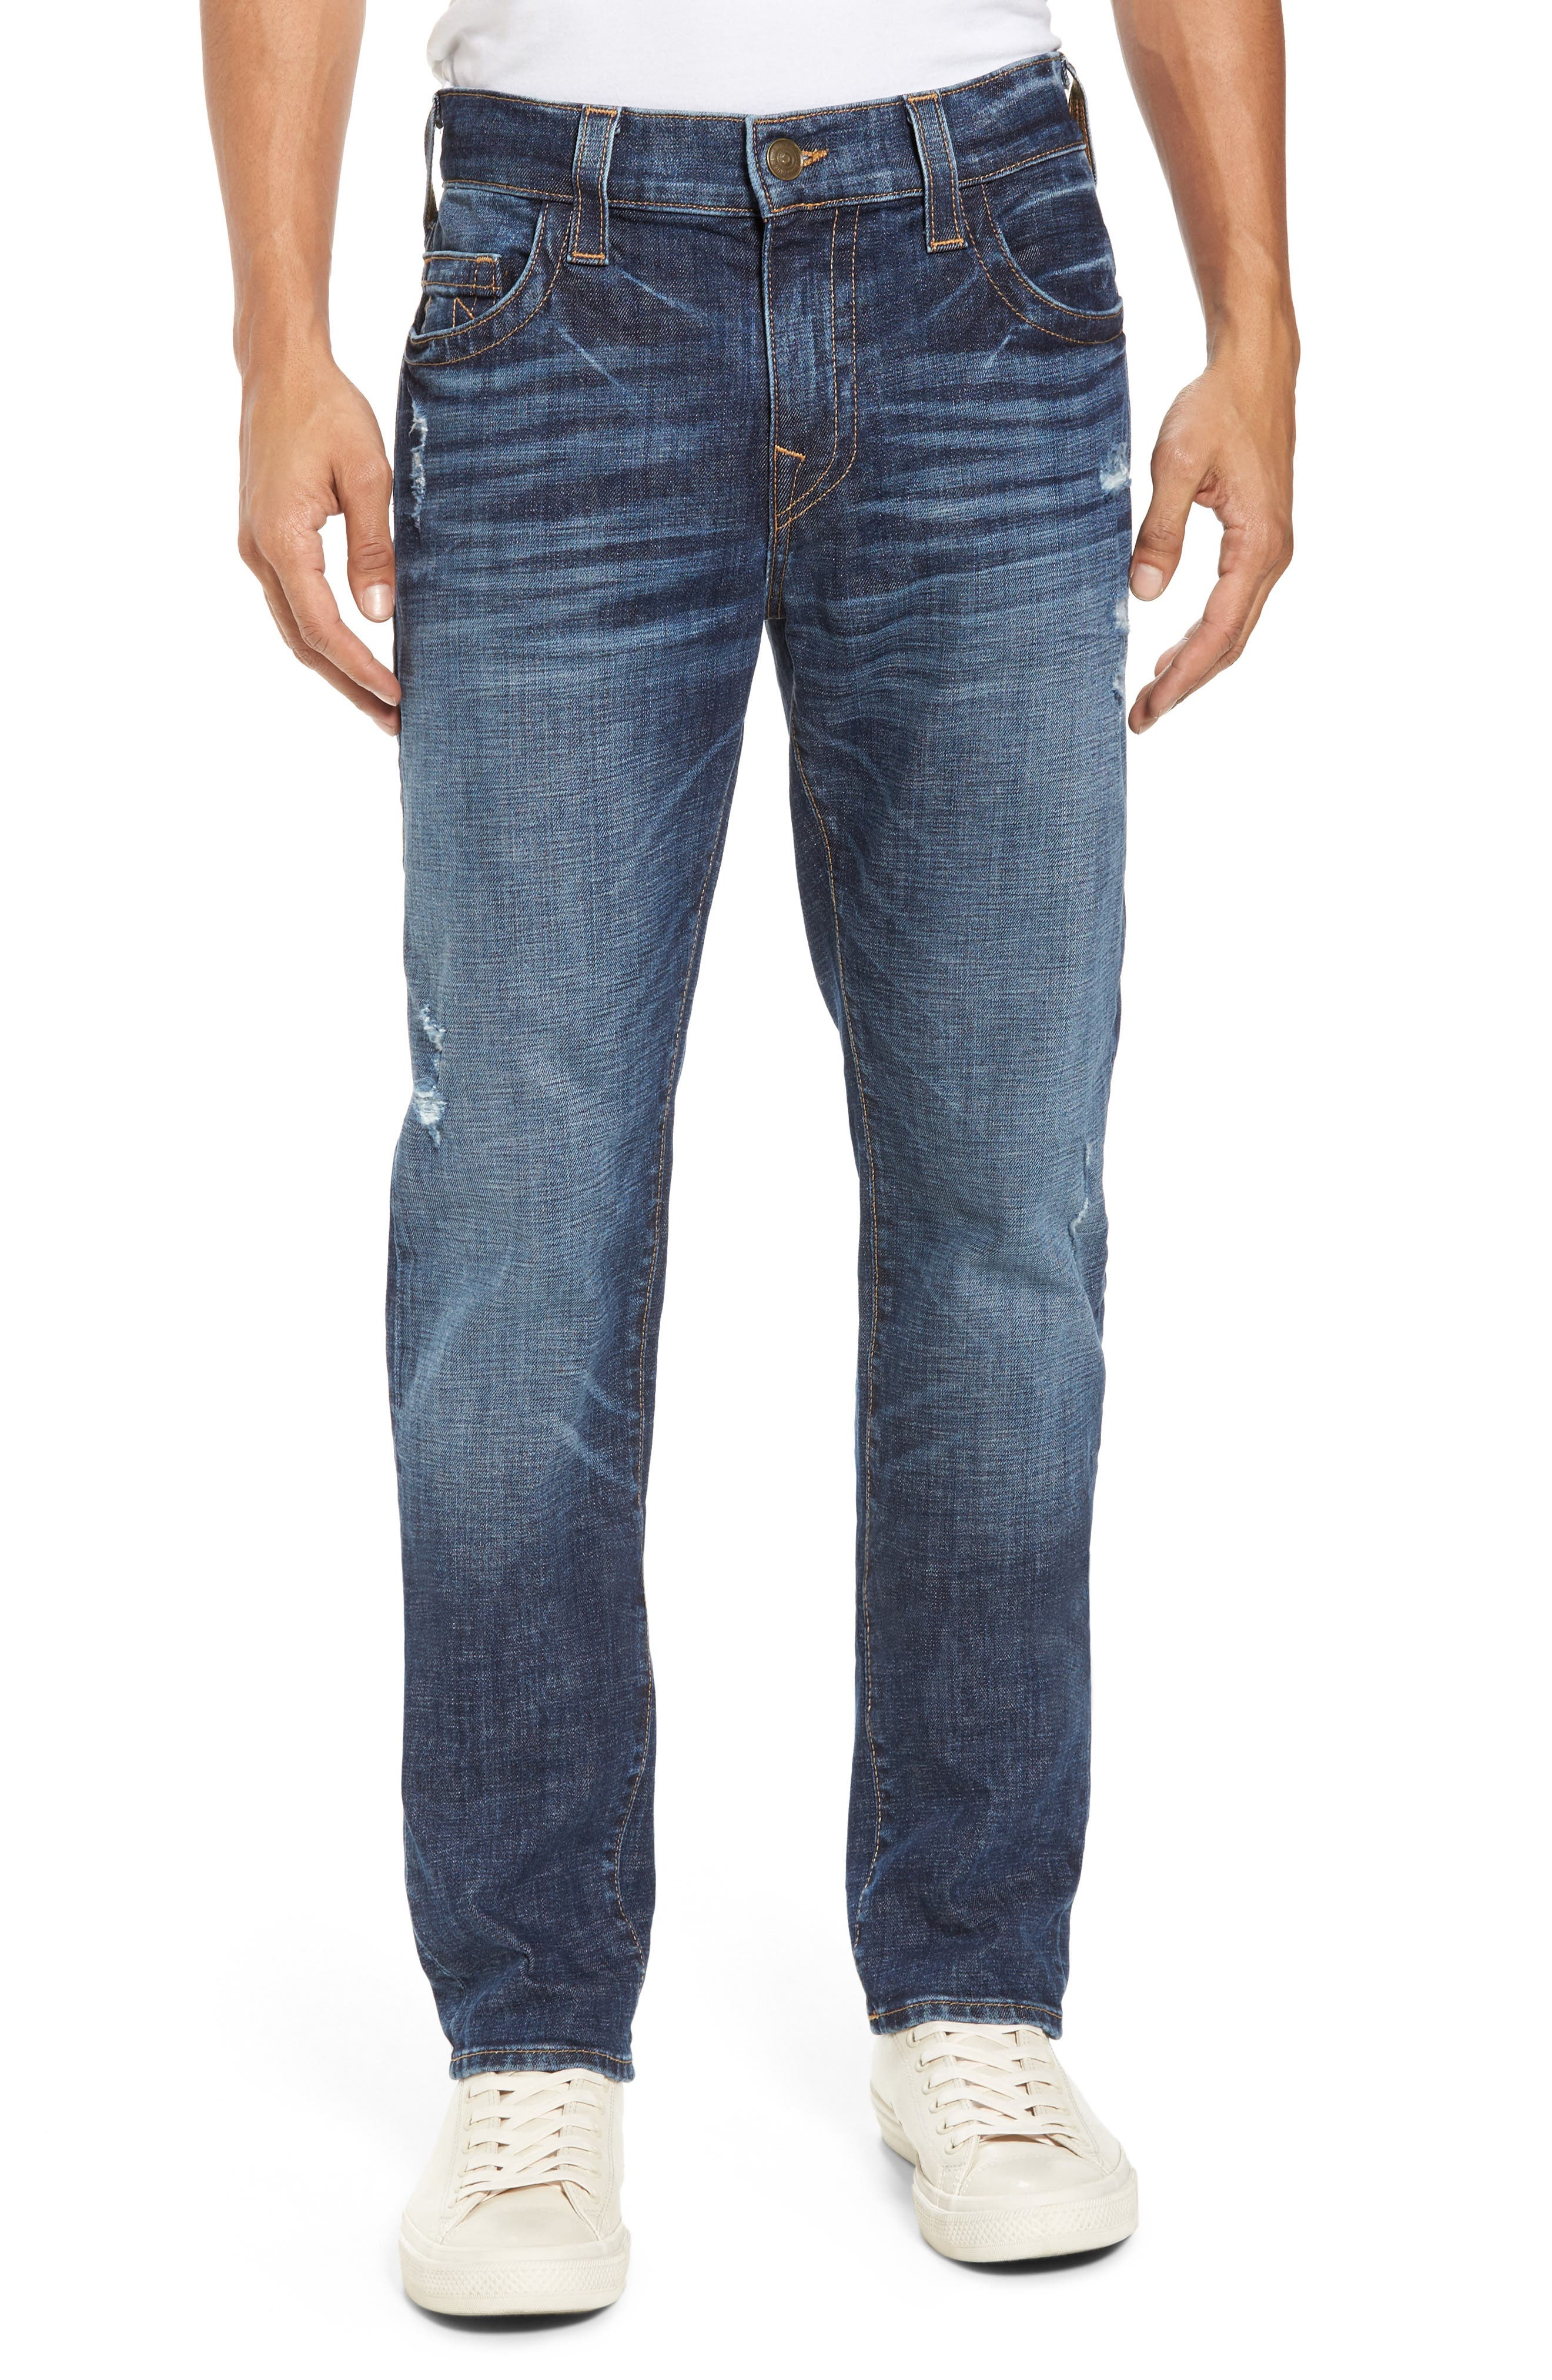 Rocco Skinny Fit Jeans,                             Main thumbnail 1, color,                             Dark Wash